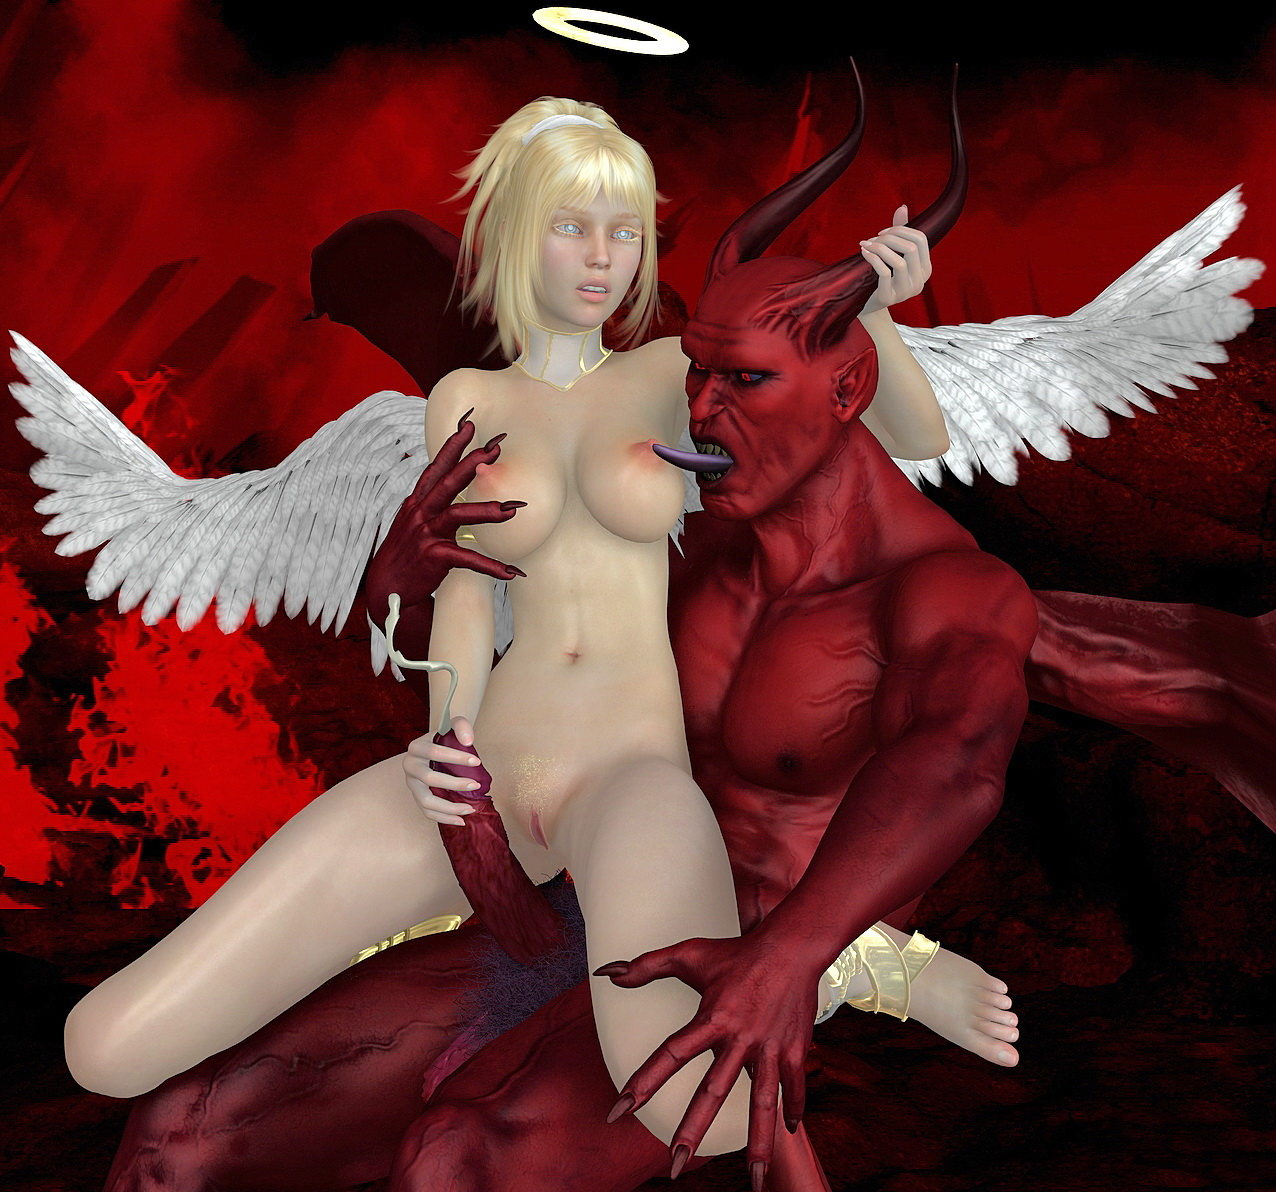 Apologise, but Nude pics from demonic